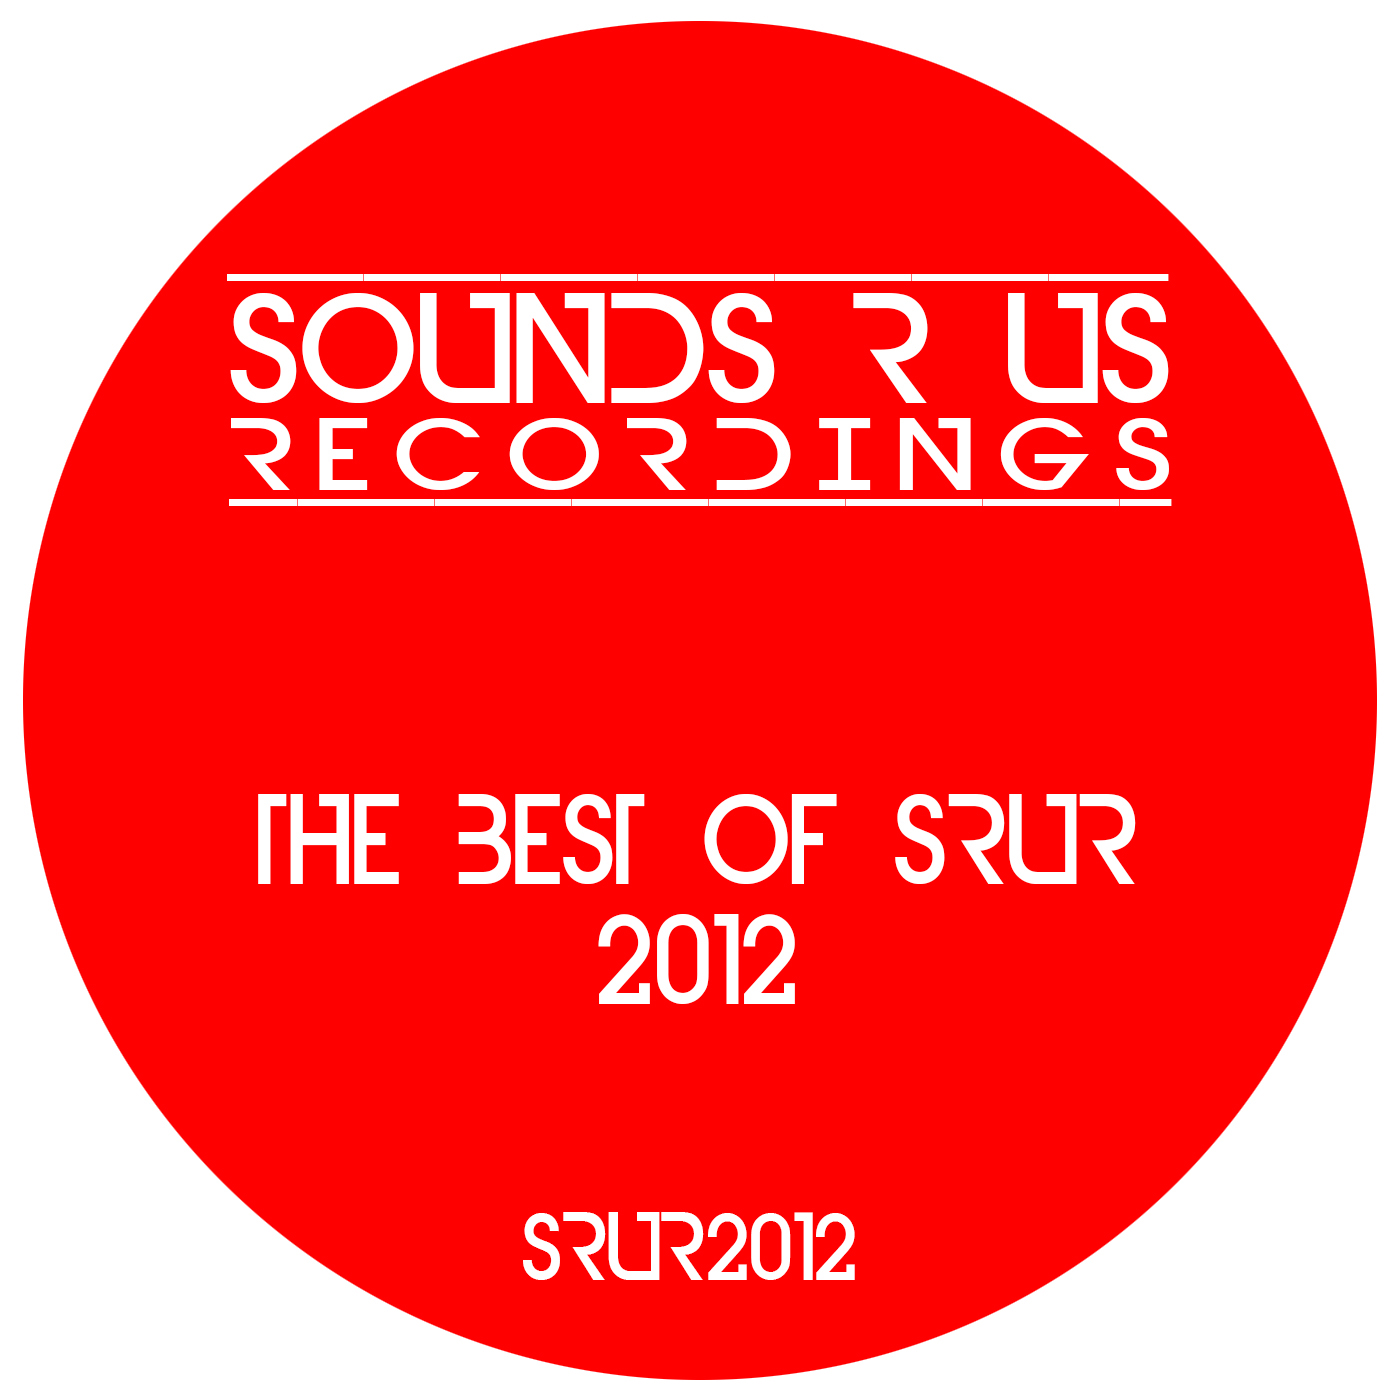 The-Best-Of-SRUR-2012